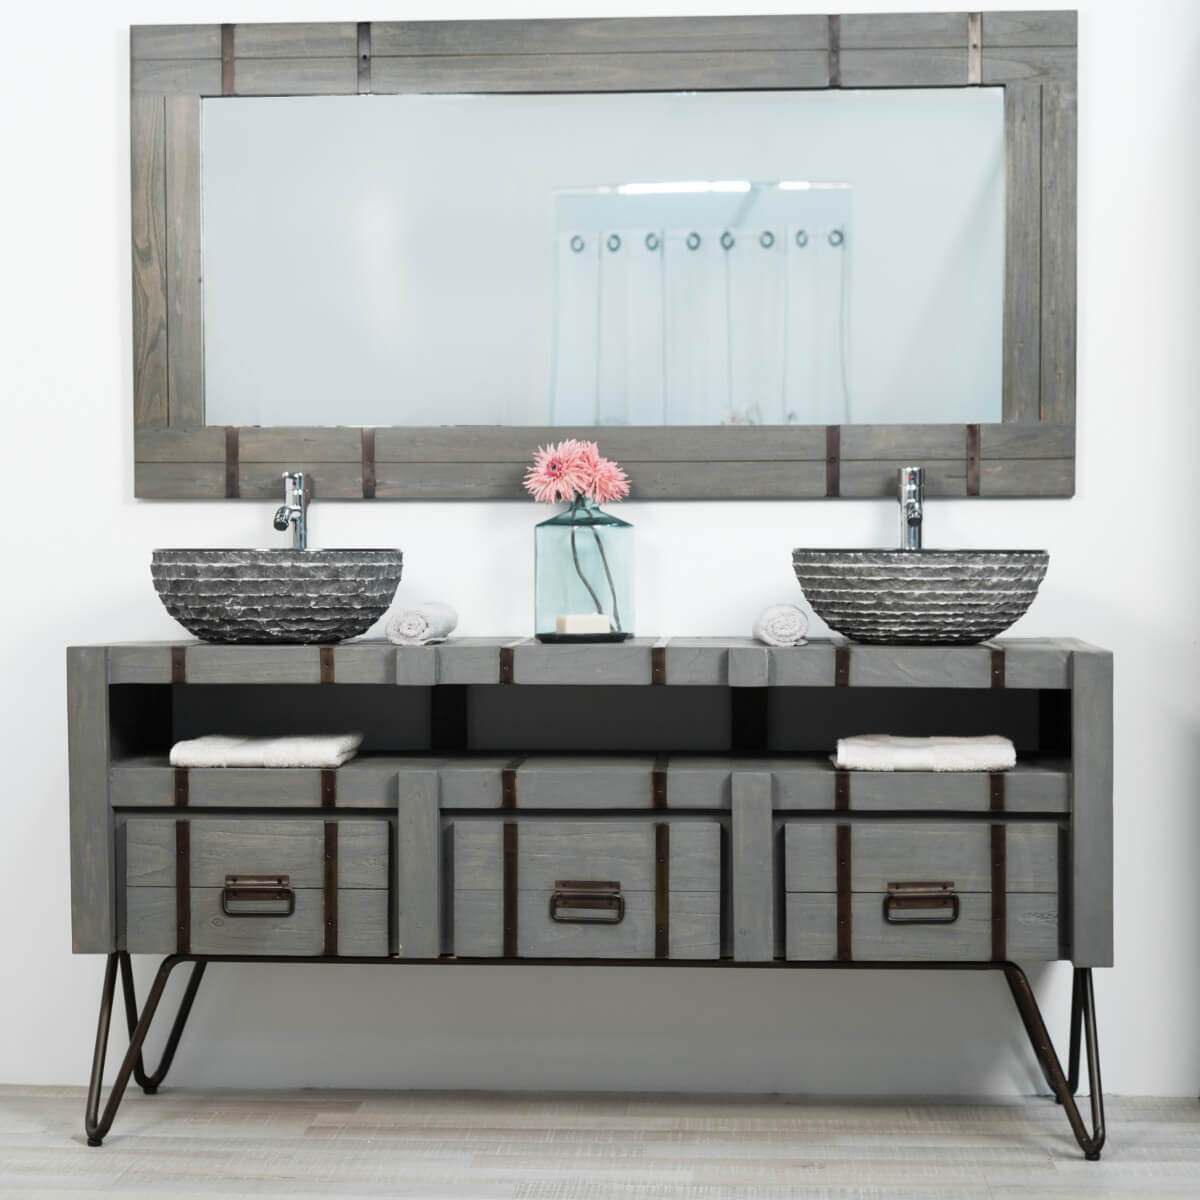 grand miroir de salle de bain loft 160x80 gris. Black Bedroom Furniture Sets. Home Design Ideas